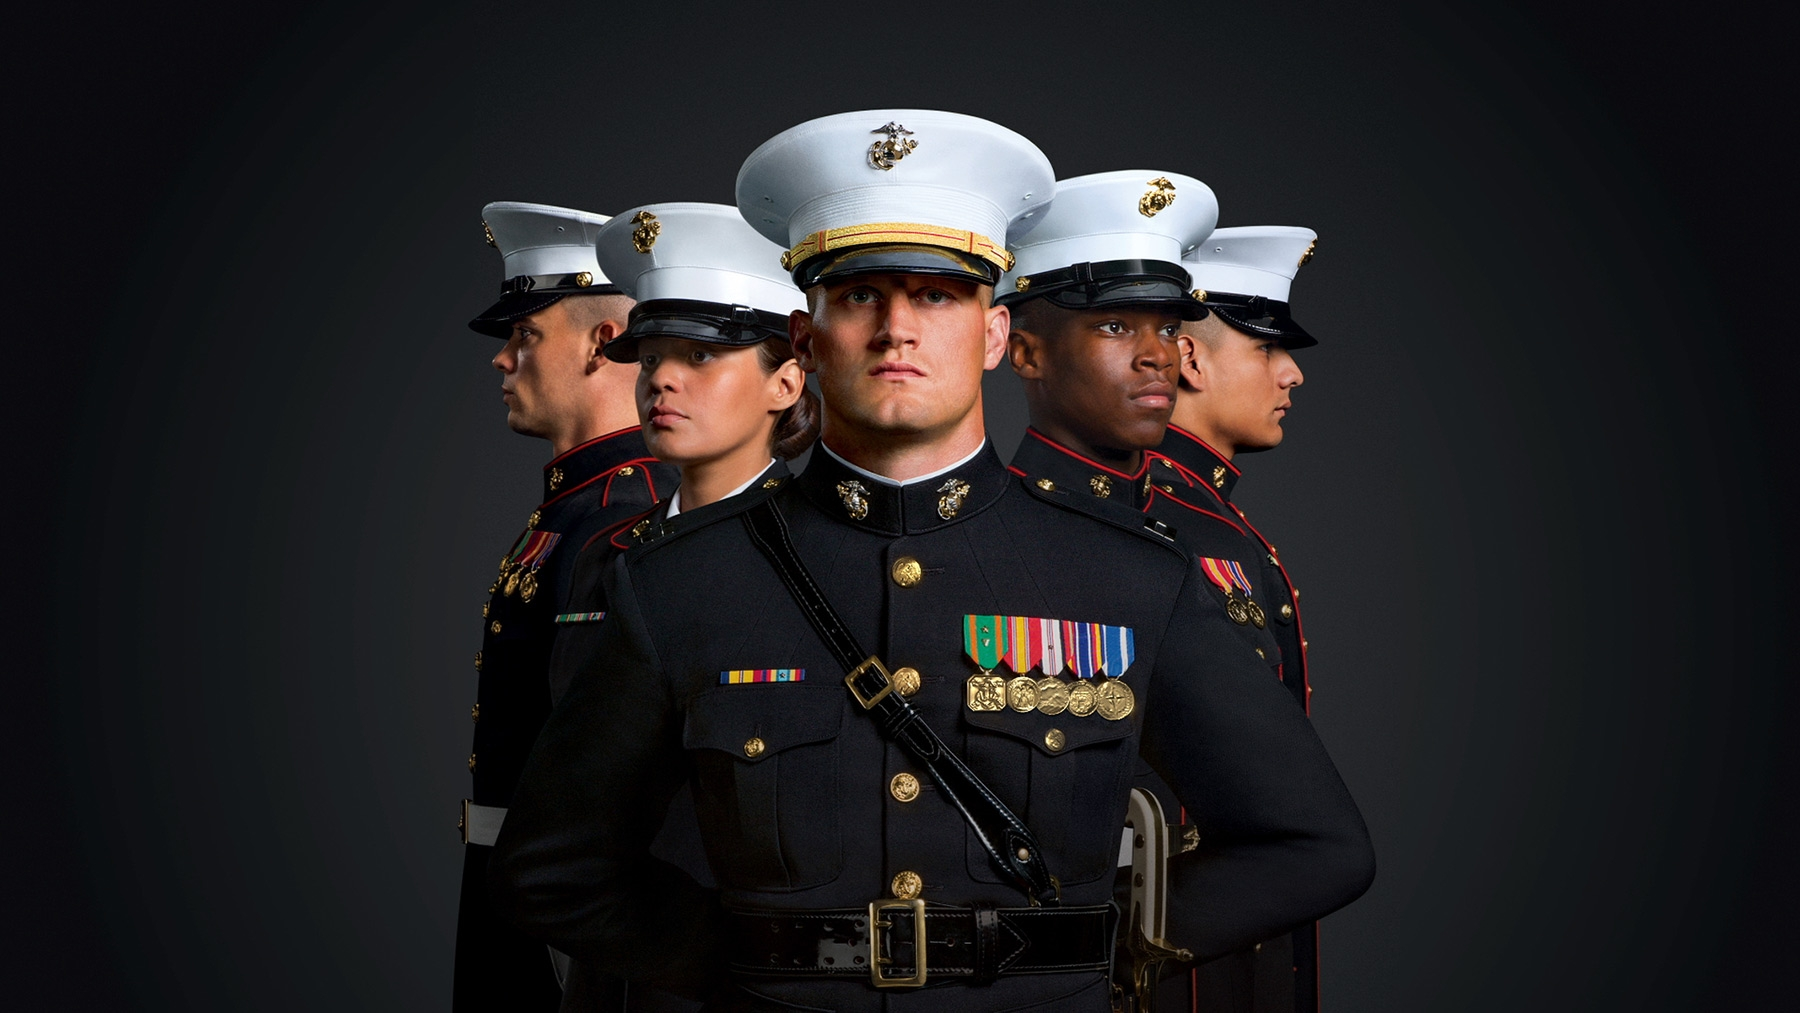 A group of Marines are shown in Dress Blues, their medals illuminated.